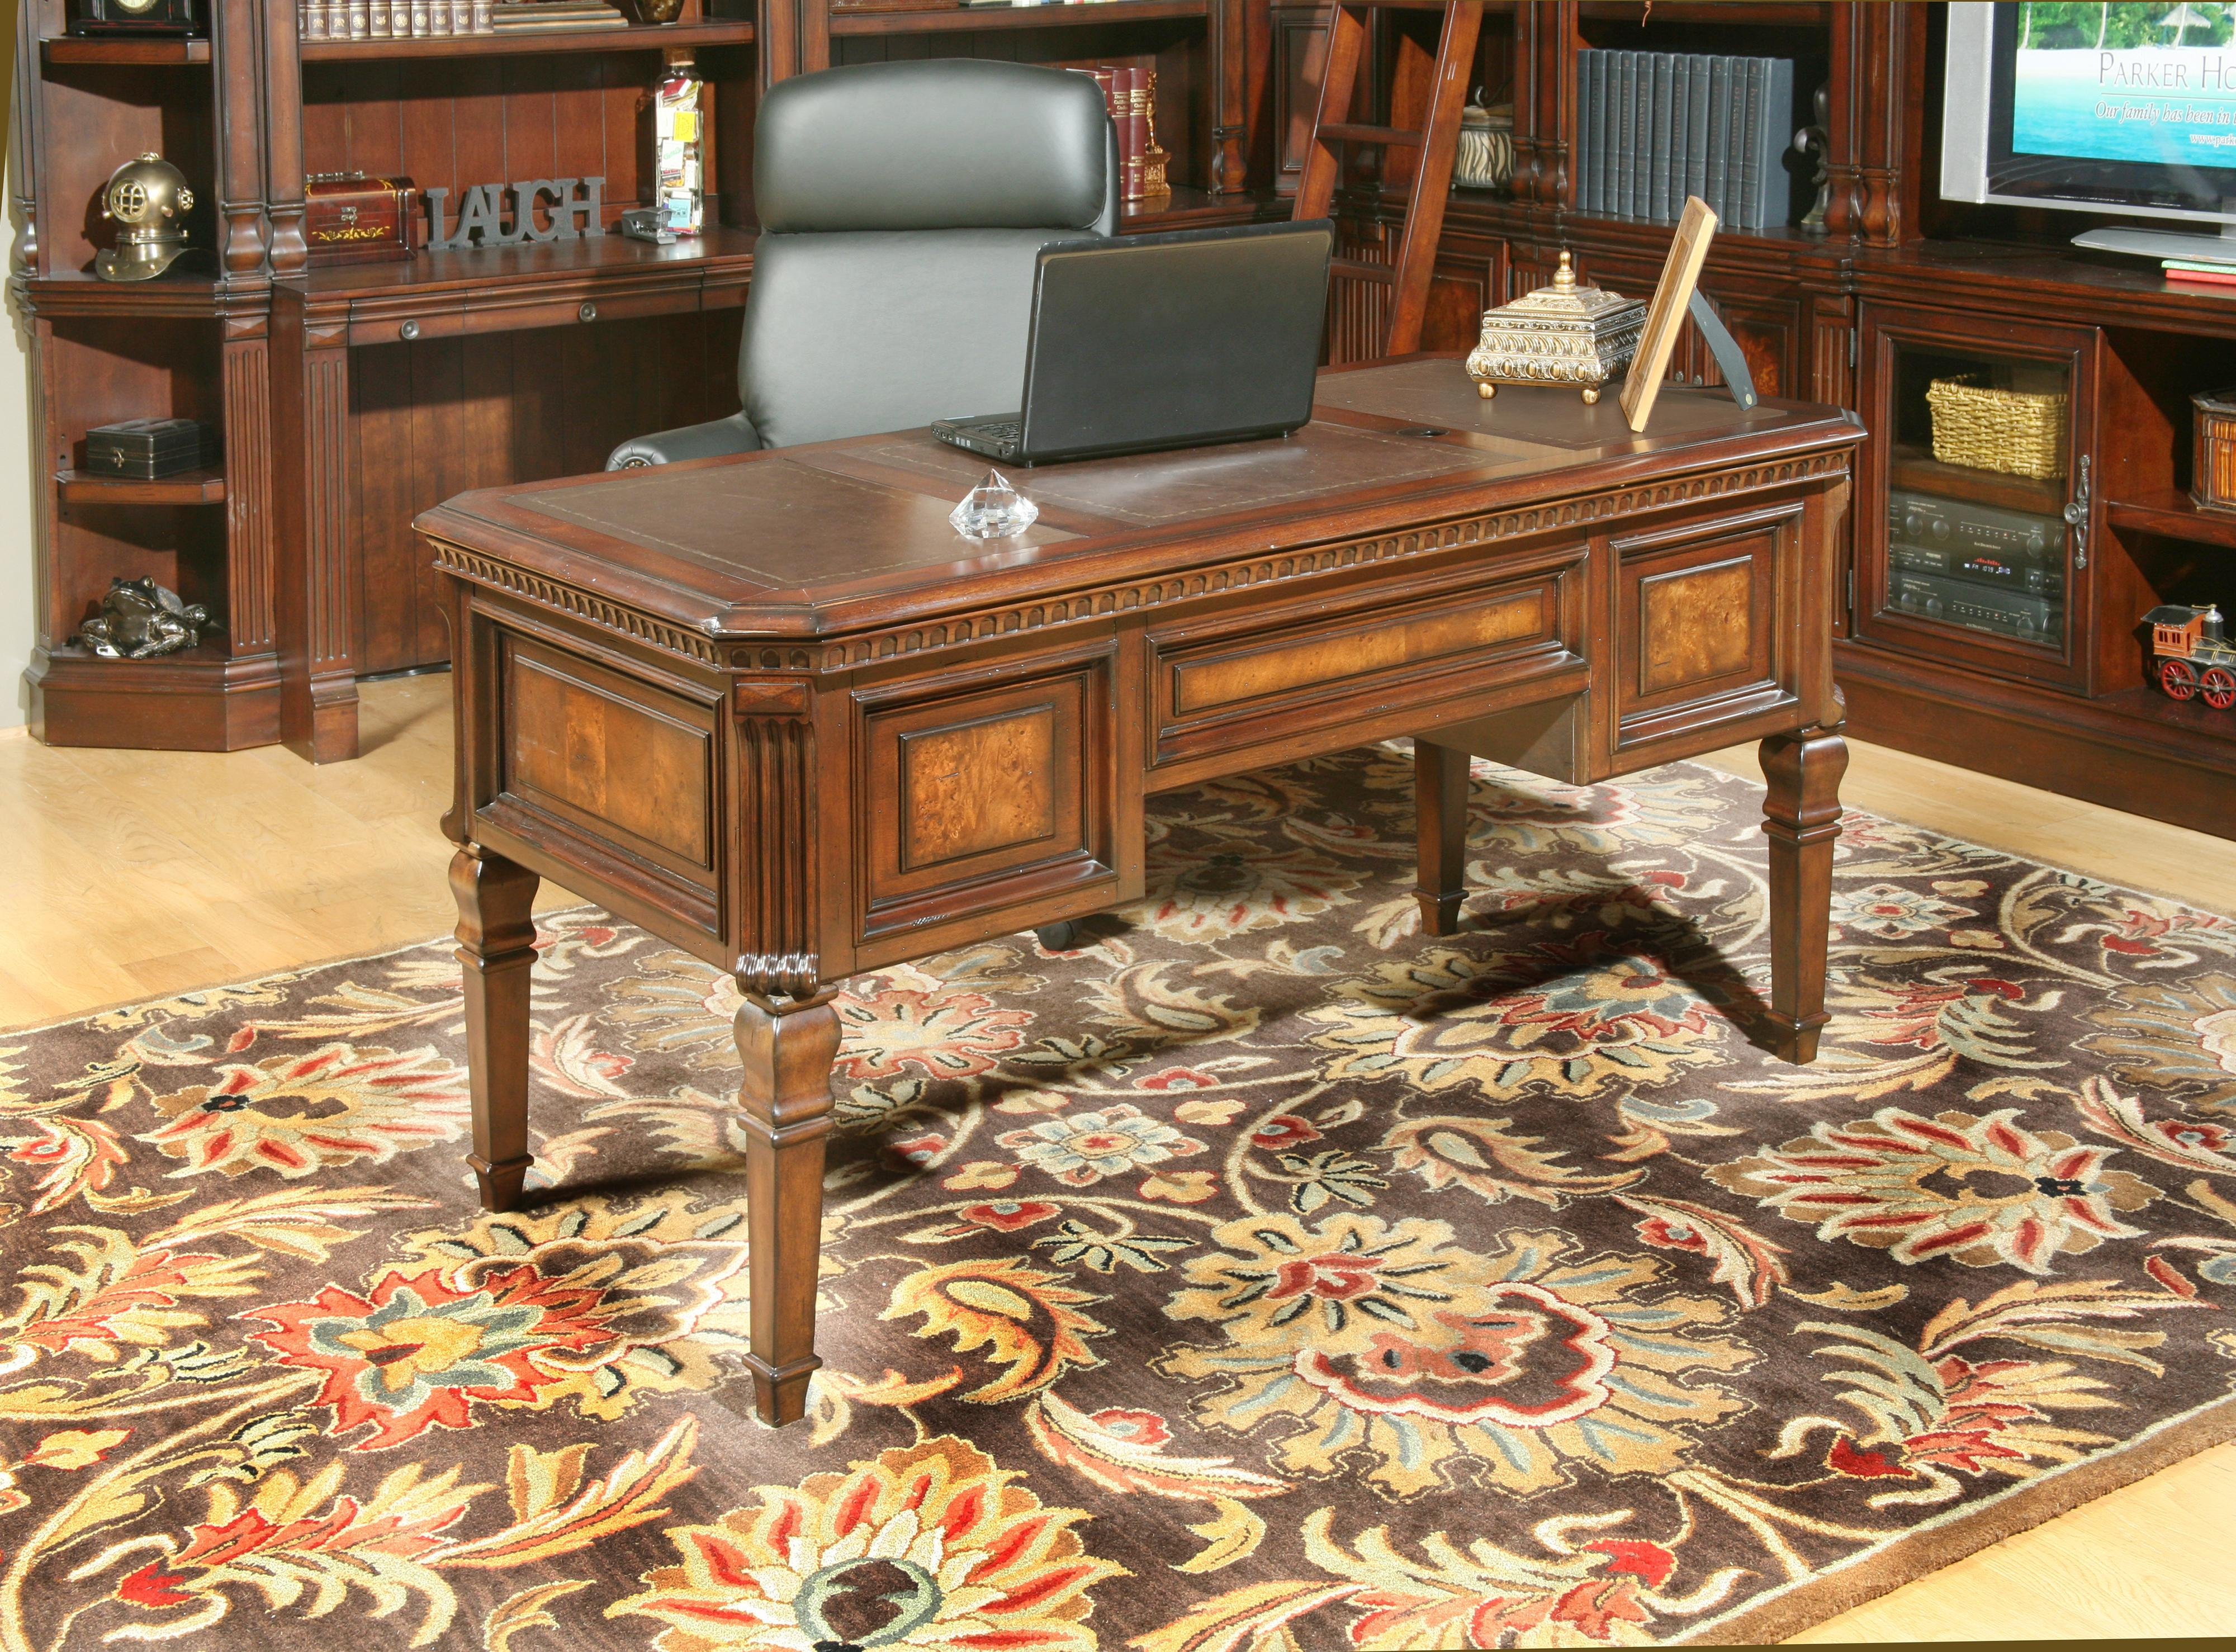 Parker House Corsica Cor 485 Writing Desk With Drop Down